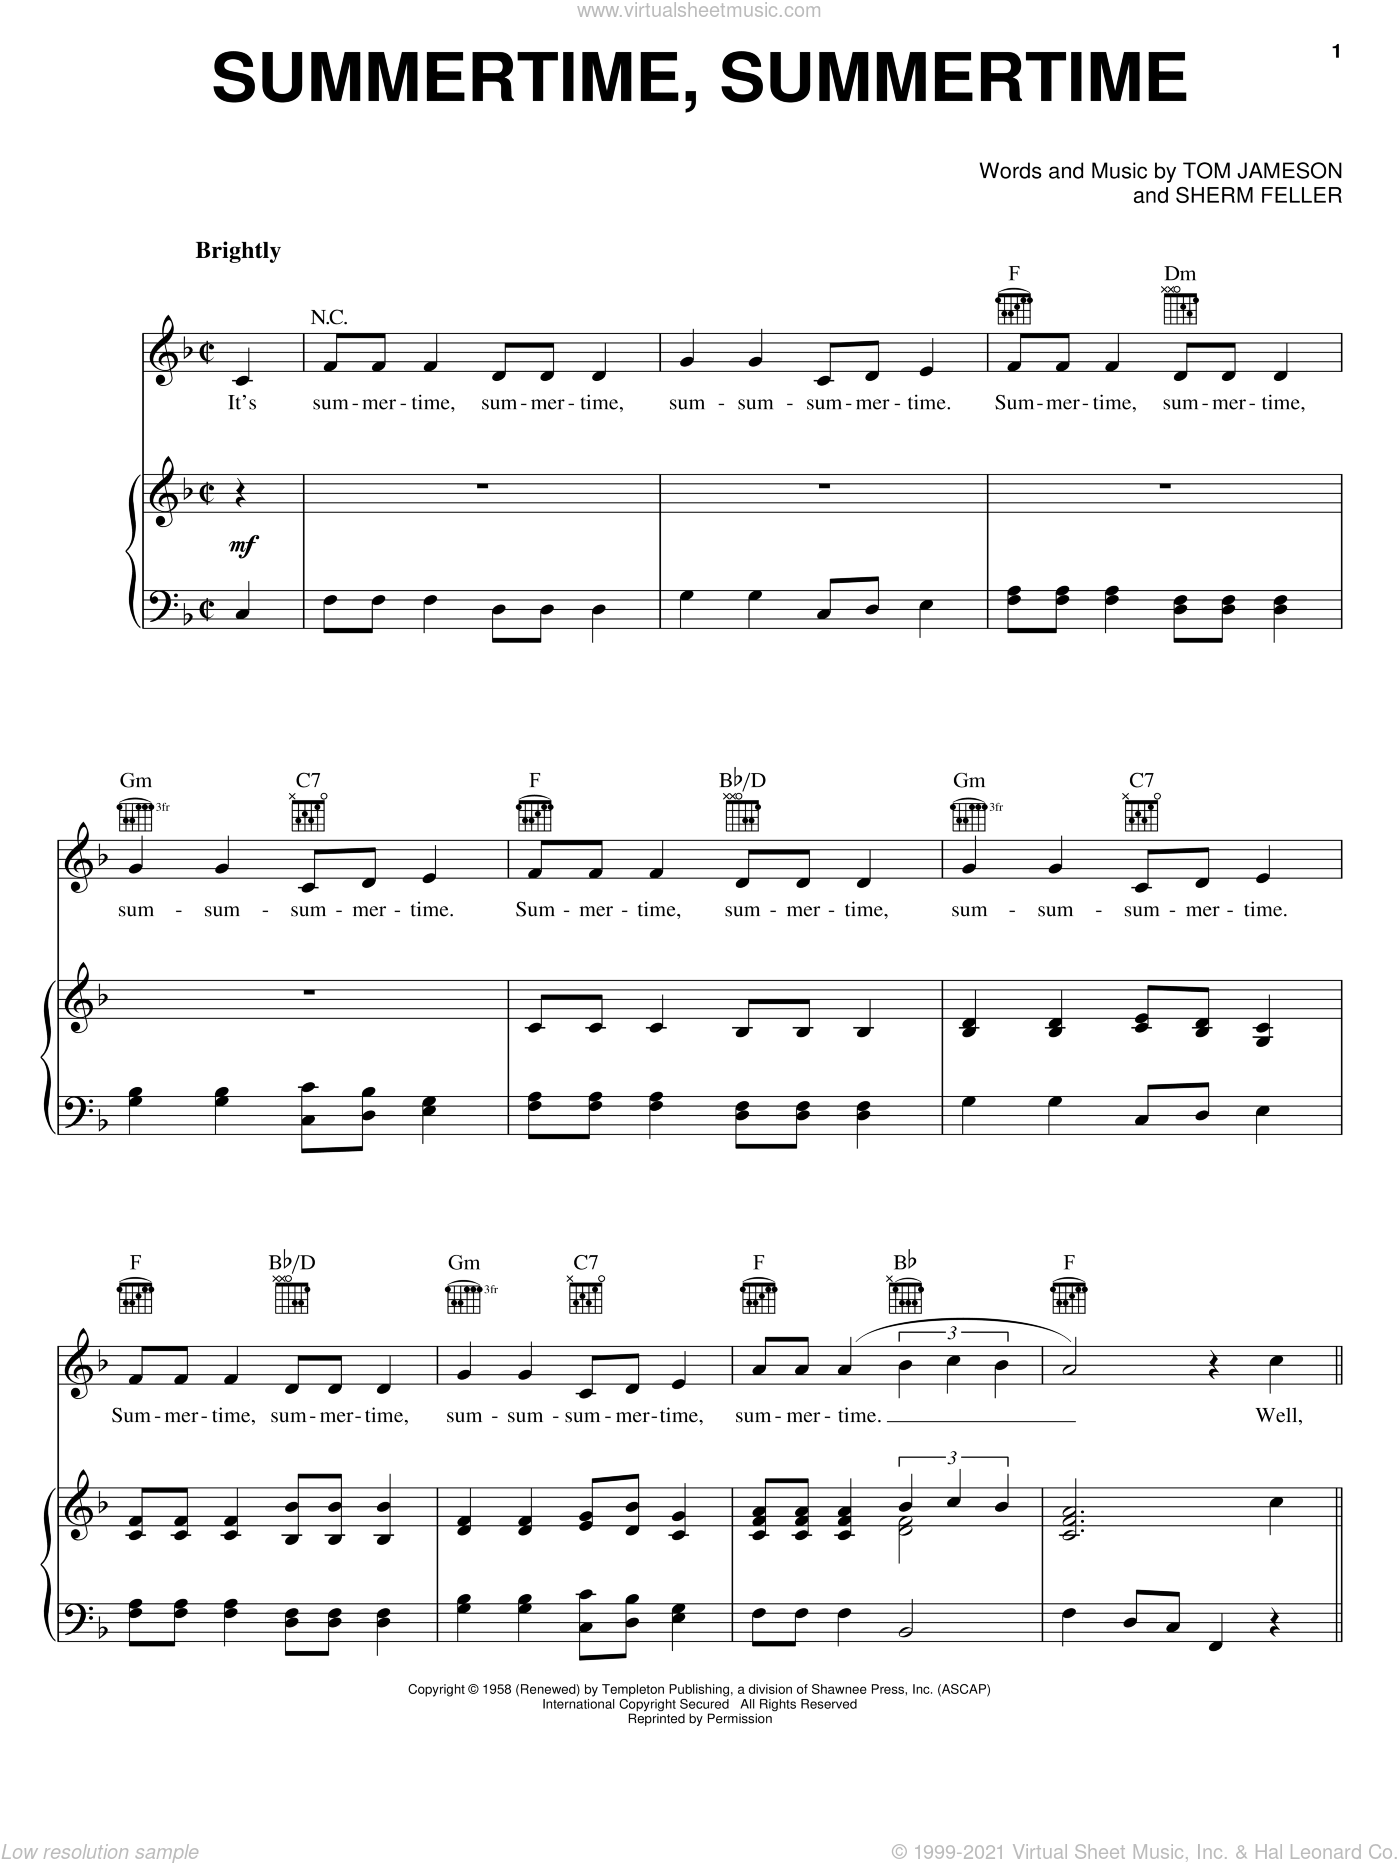 Summertime, Summertime sheet music for voice, piano or guitar by Tom Jameson. Score Image Preview.